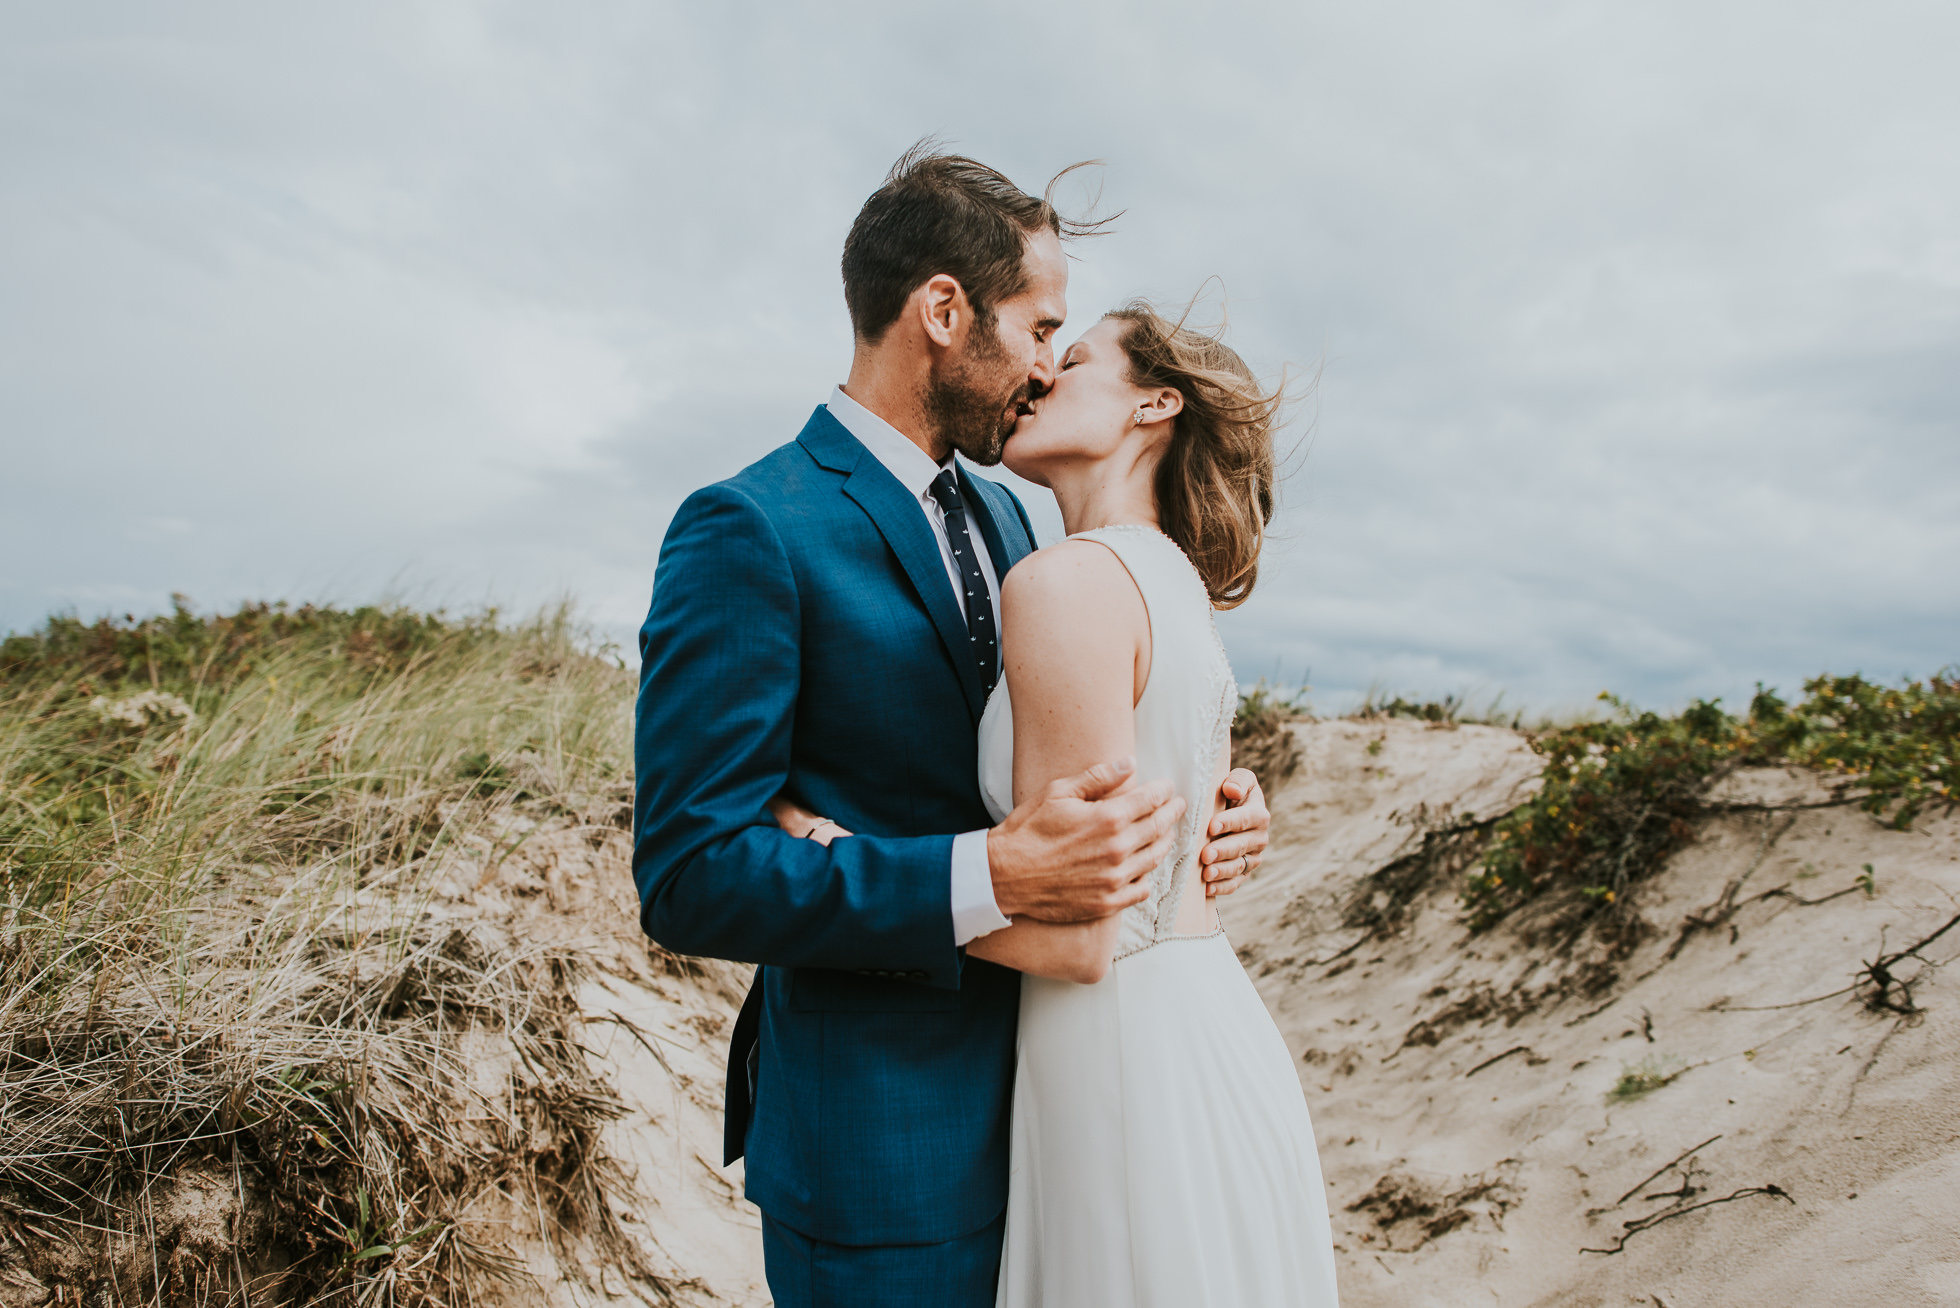 boho bride and groom at the beach Montauk wedding photographed by Traverse the Tides